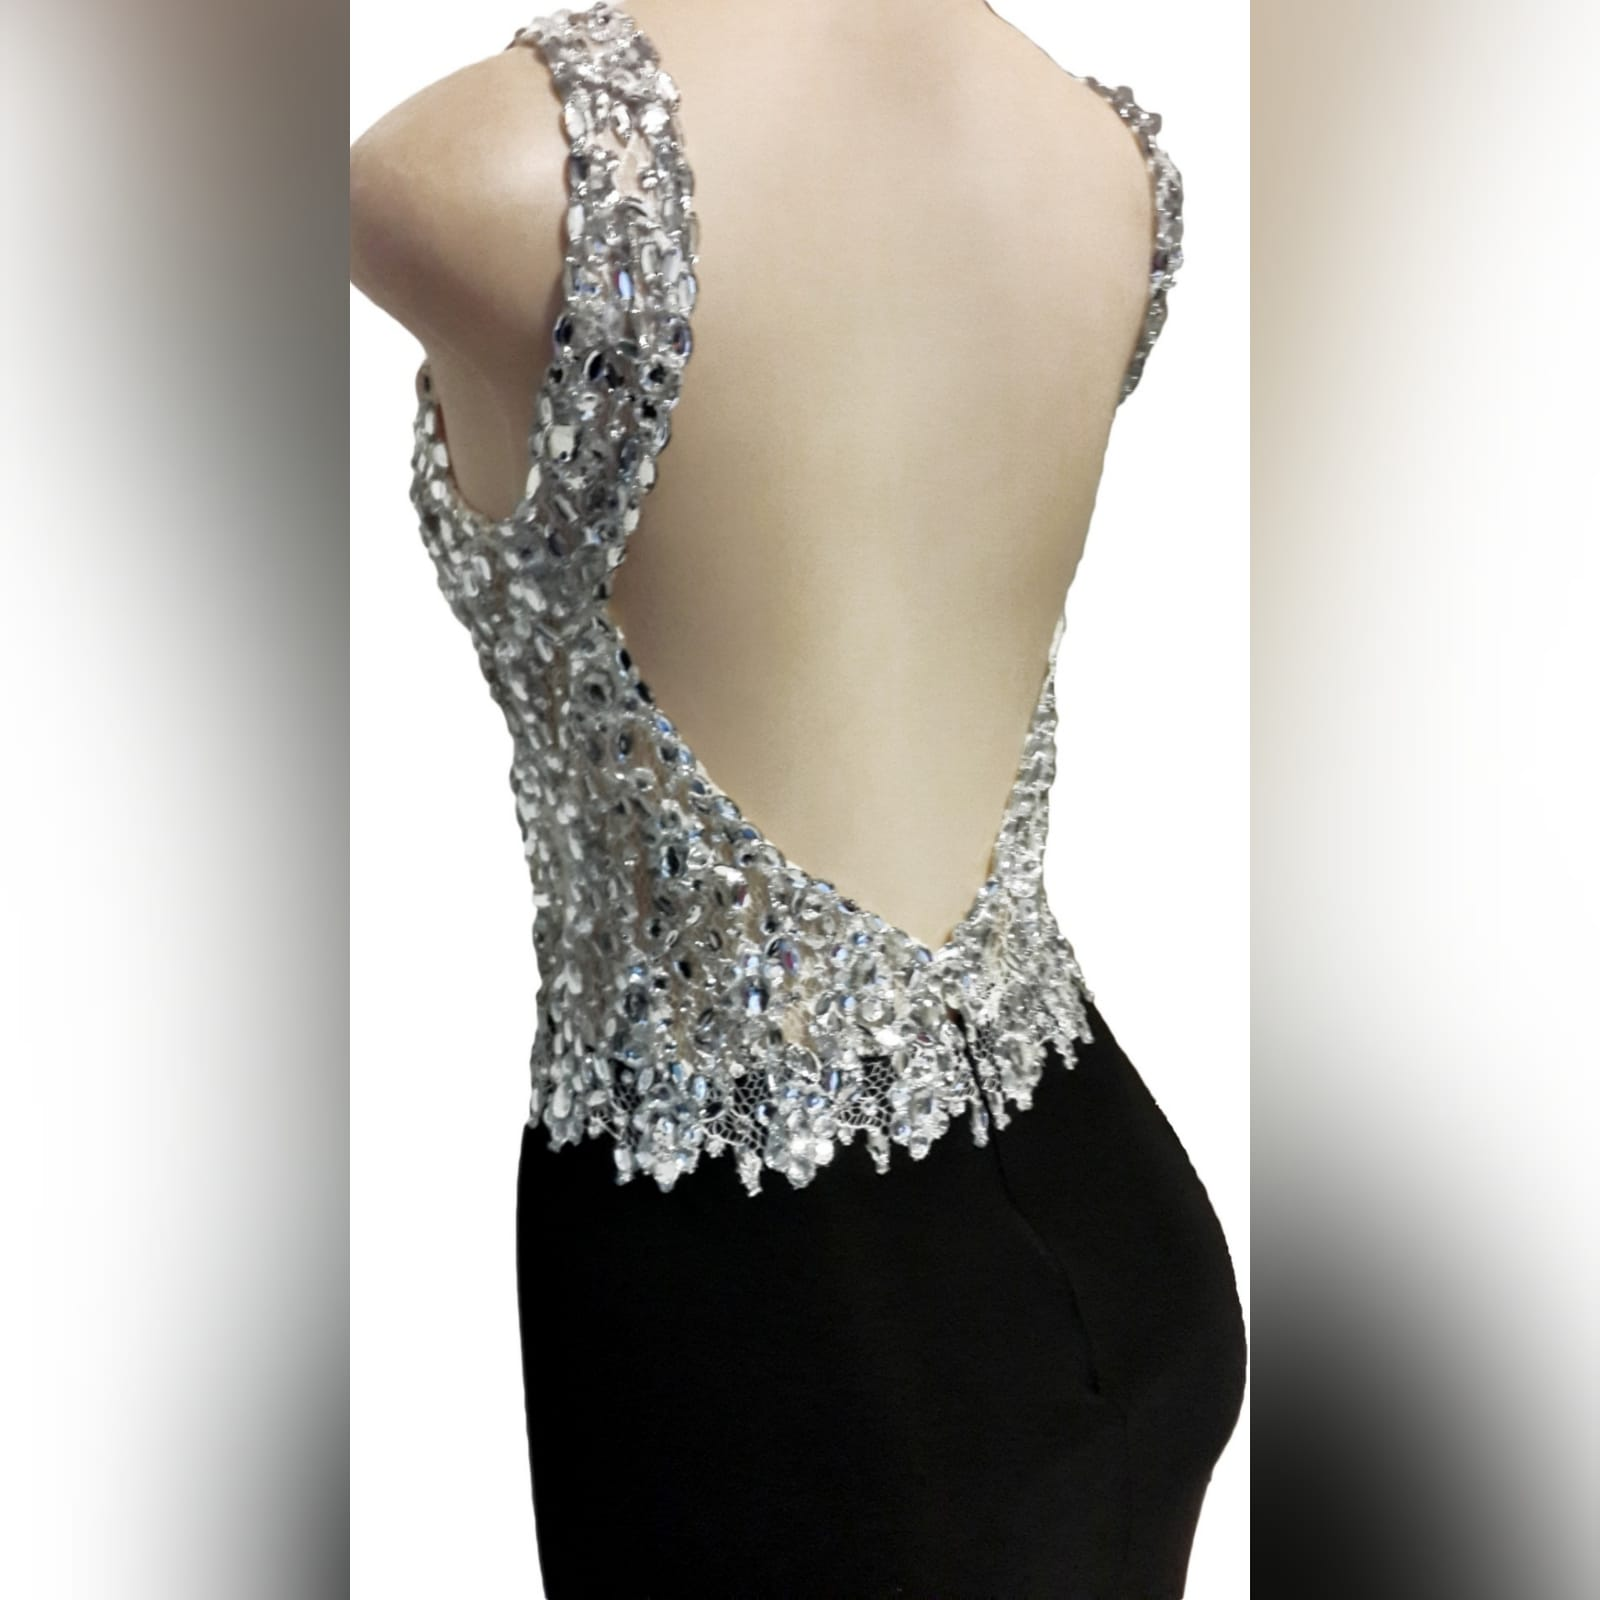 Black and silver prom dress with a slit and a train 7 black & silver prom dress with a slit and a train. Bodice with a sweetheart neckline and a low open back. With detailed silver beadwork through out the bodice